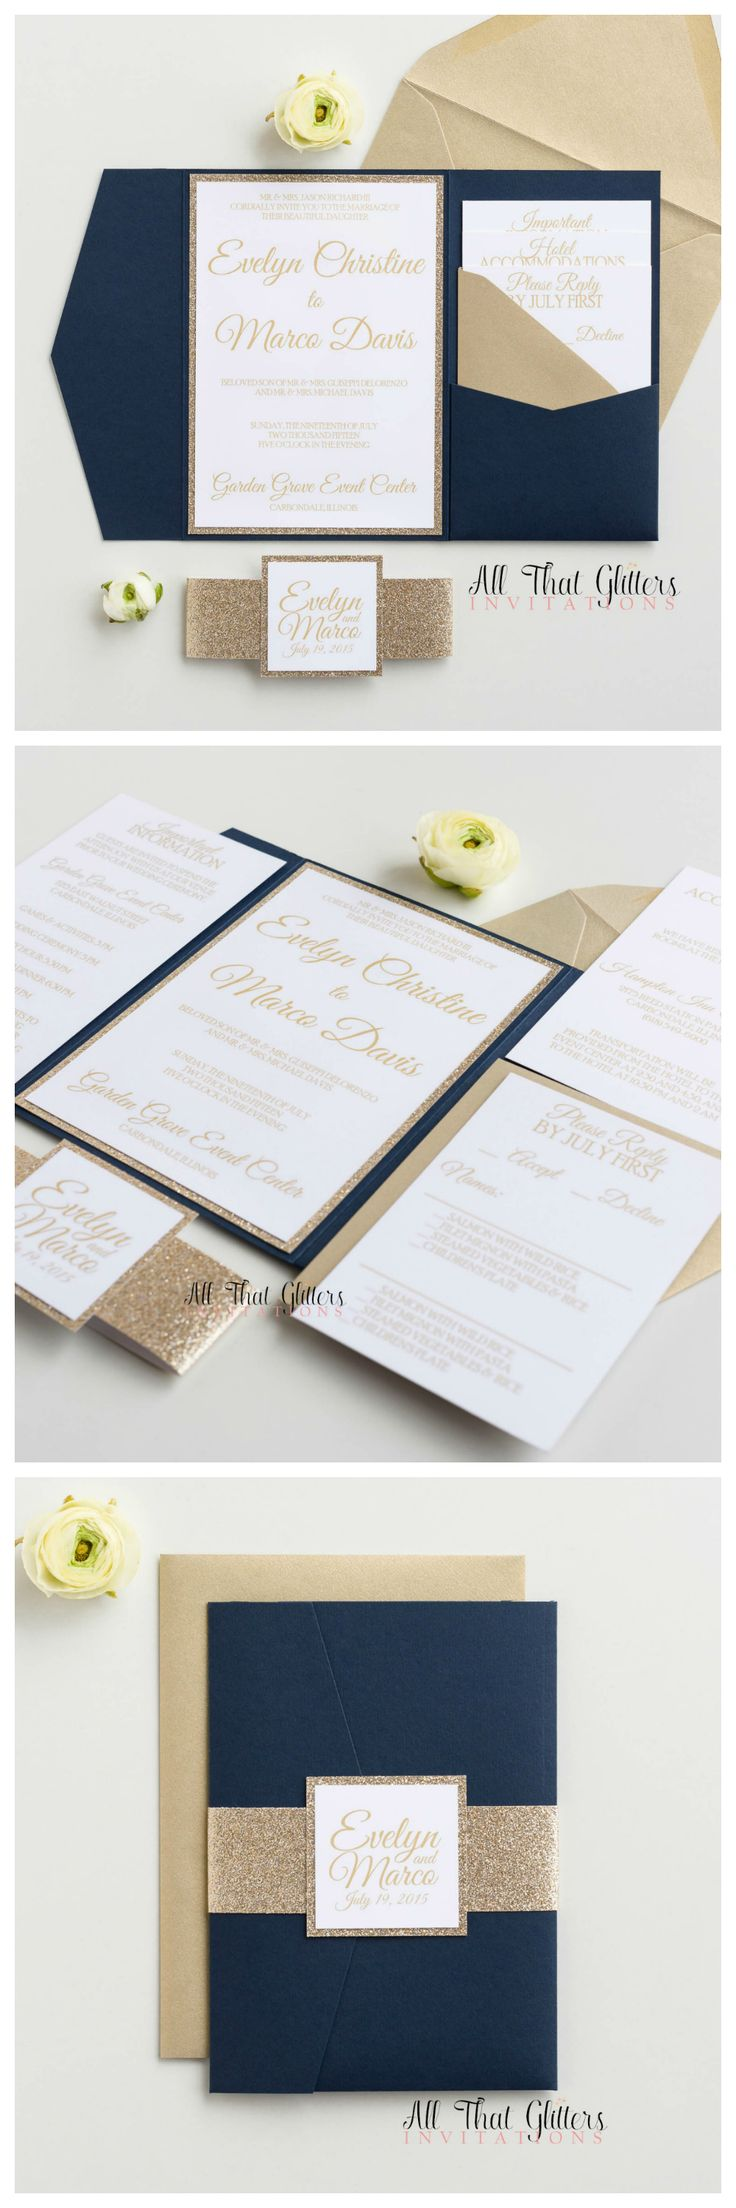 wedding invitations east london south africa%0A Navy and gold wedding invitations are THE TOP trend for      wedding  inspiration  We paired